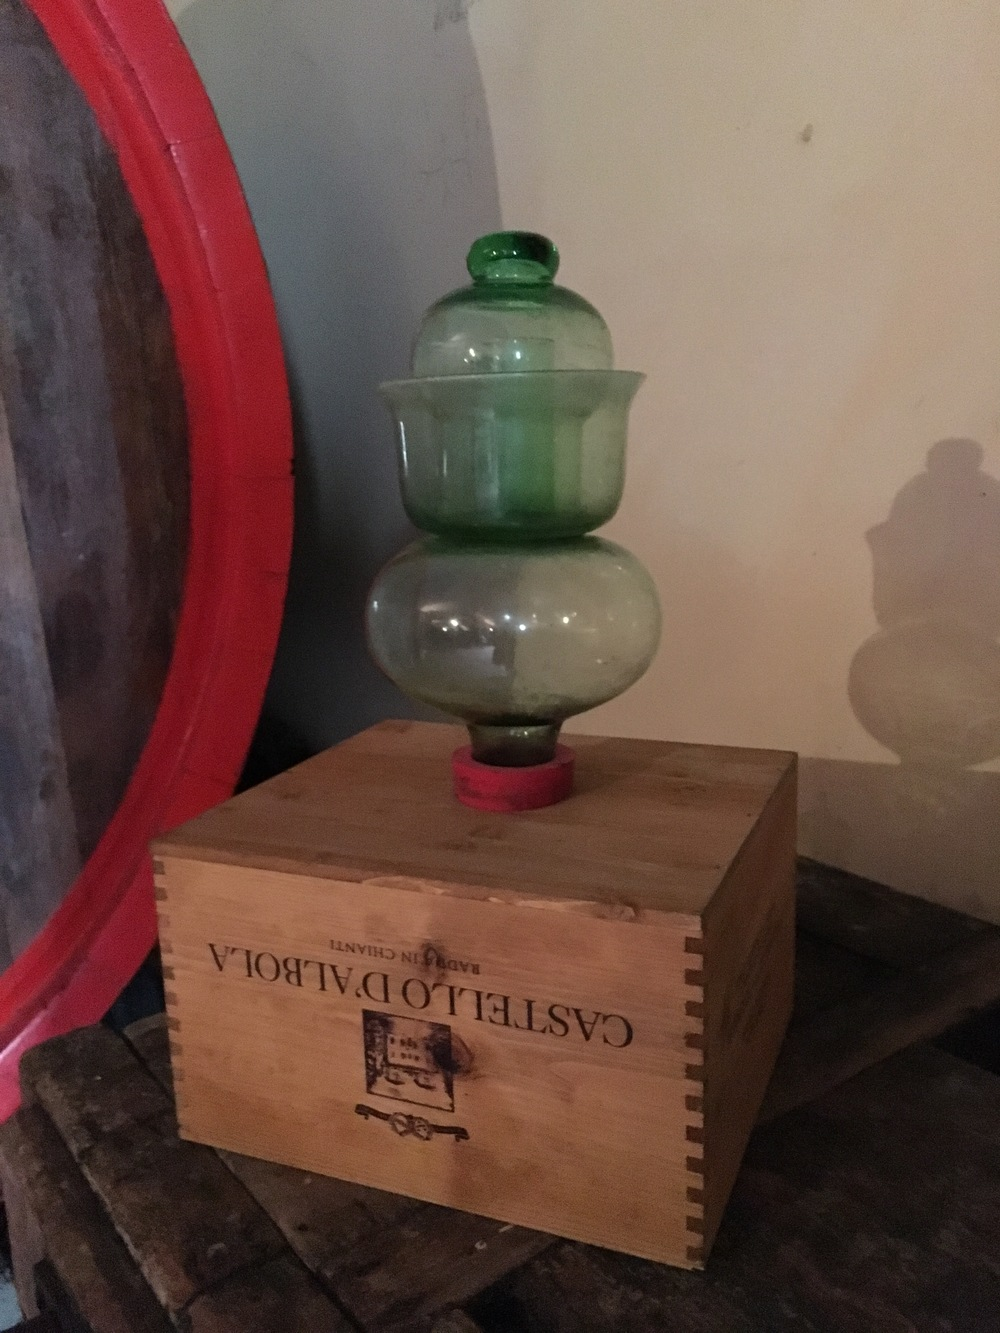 These glass bulbs are on the tops of all the barrels to indicate if the barrel is full. It allows for more wine to be aded as needed, without allowing much air in which would oxidize the wine, negatively impacting color and flavor. Invented by Leonardo DaVinci!